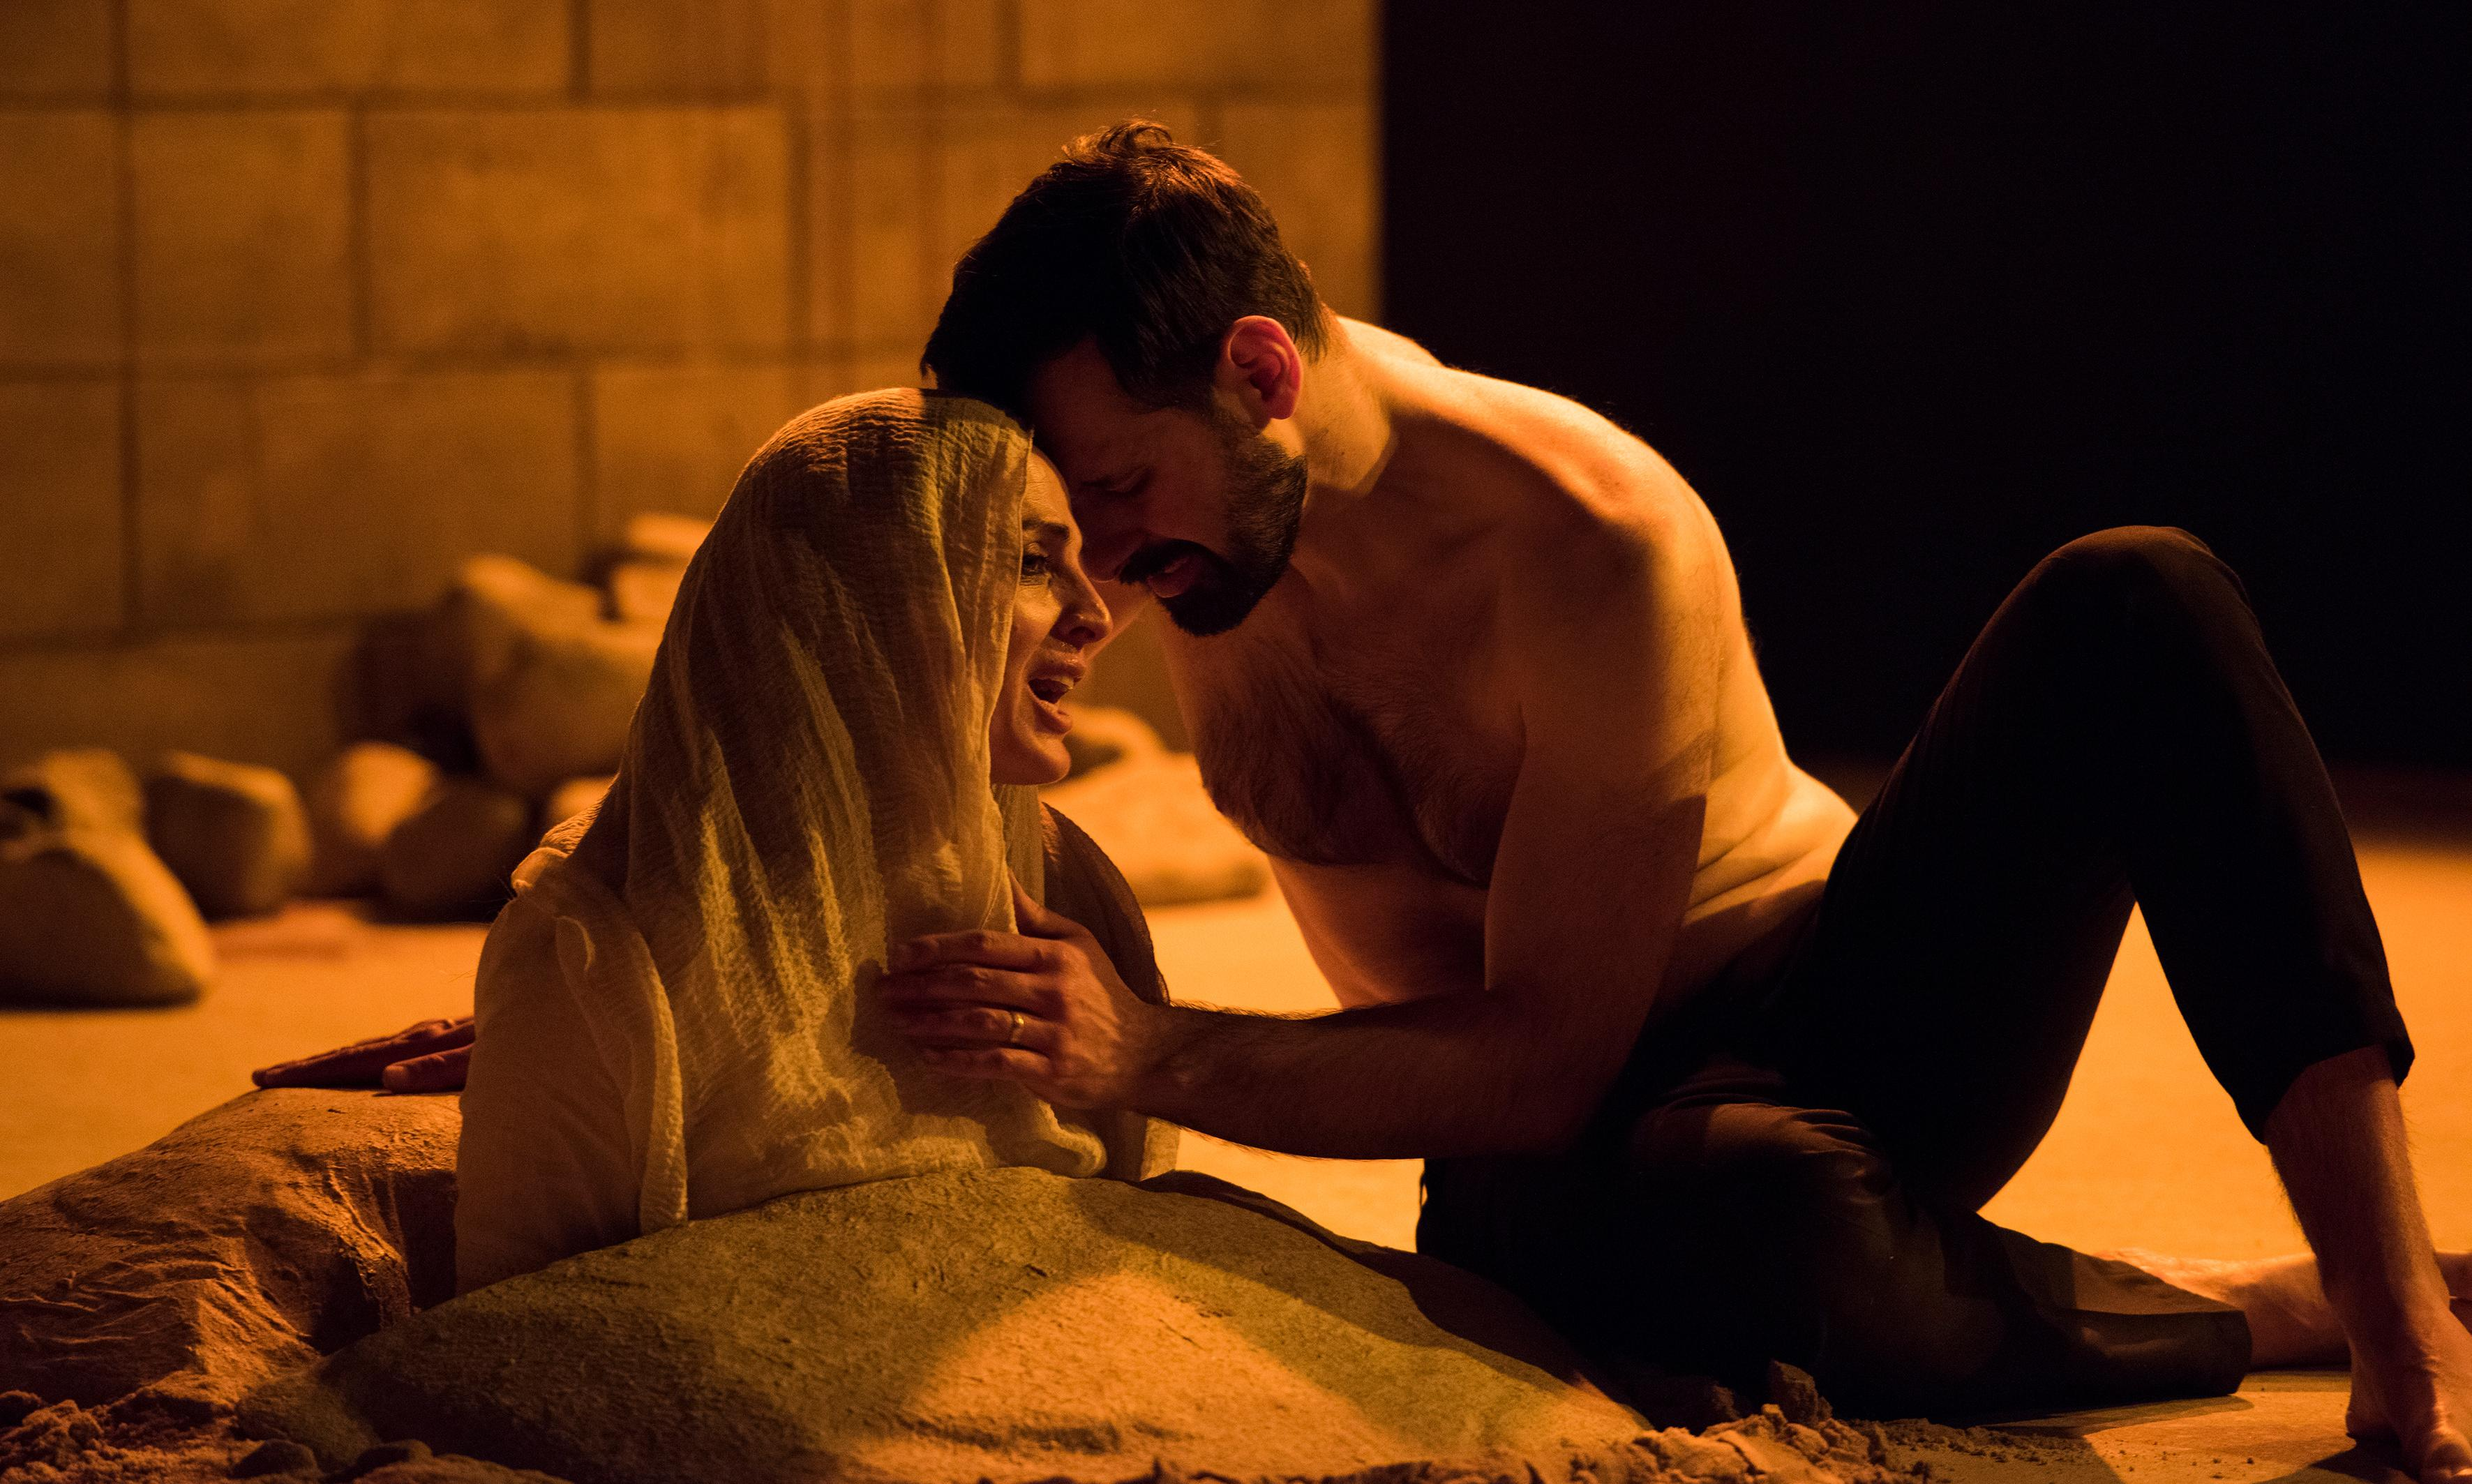 Sinners review – Brian Cox directs sand-blasted sex and death drama